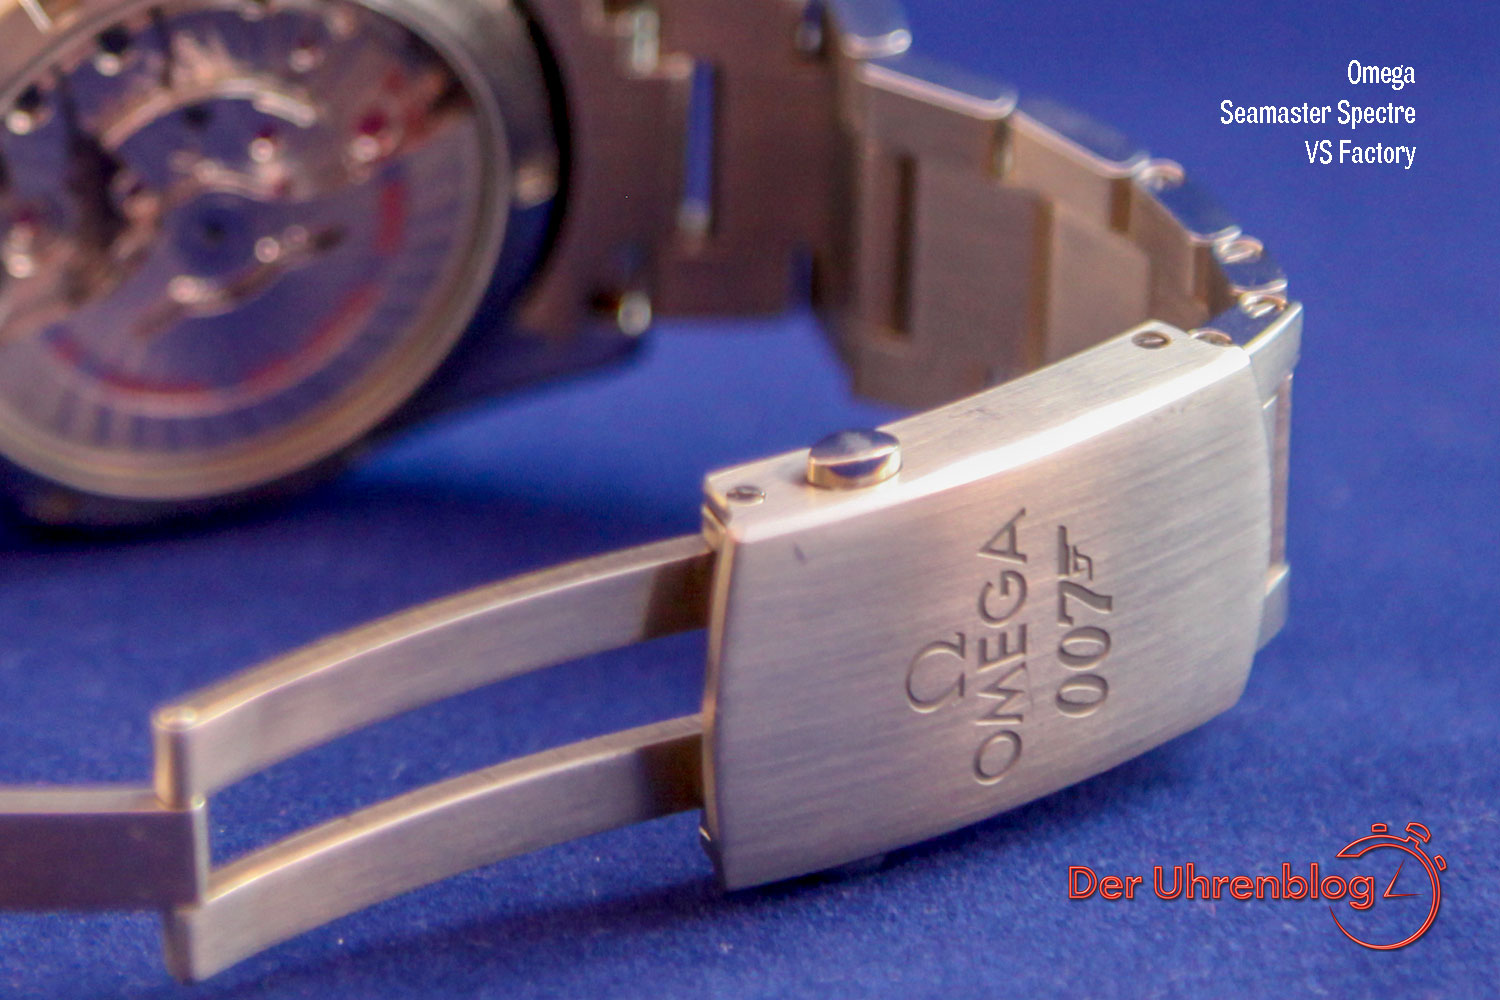 Omega Seamaster Spectre